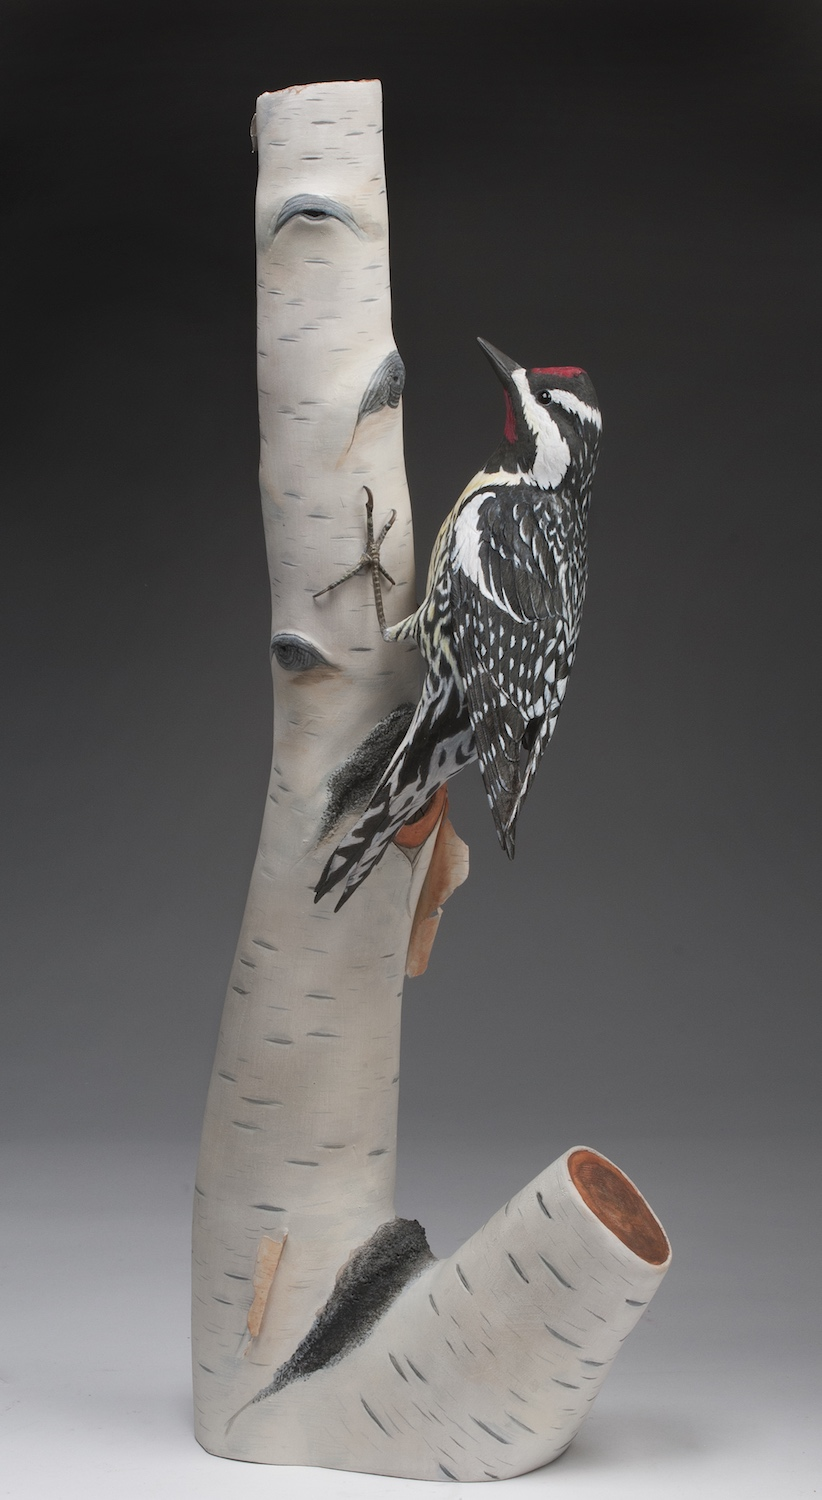 2018 Open 1st Best of Show - Austin Eade yellow-bellied sapsucker